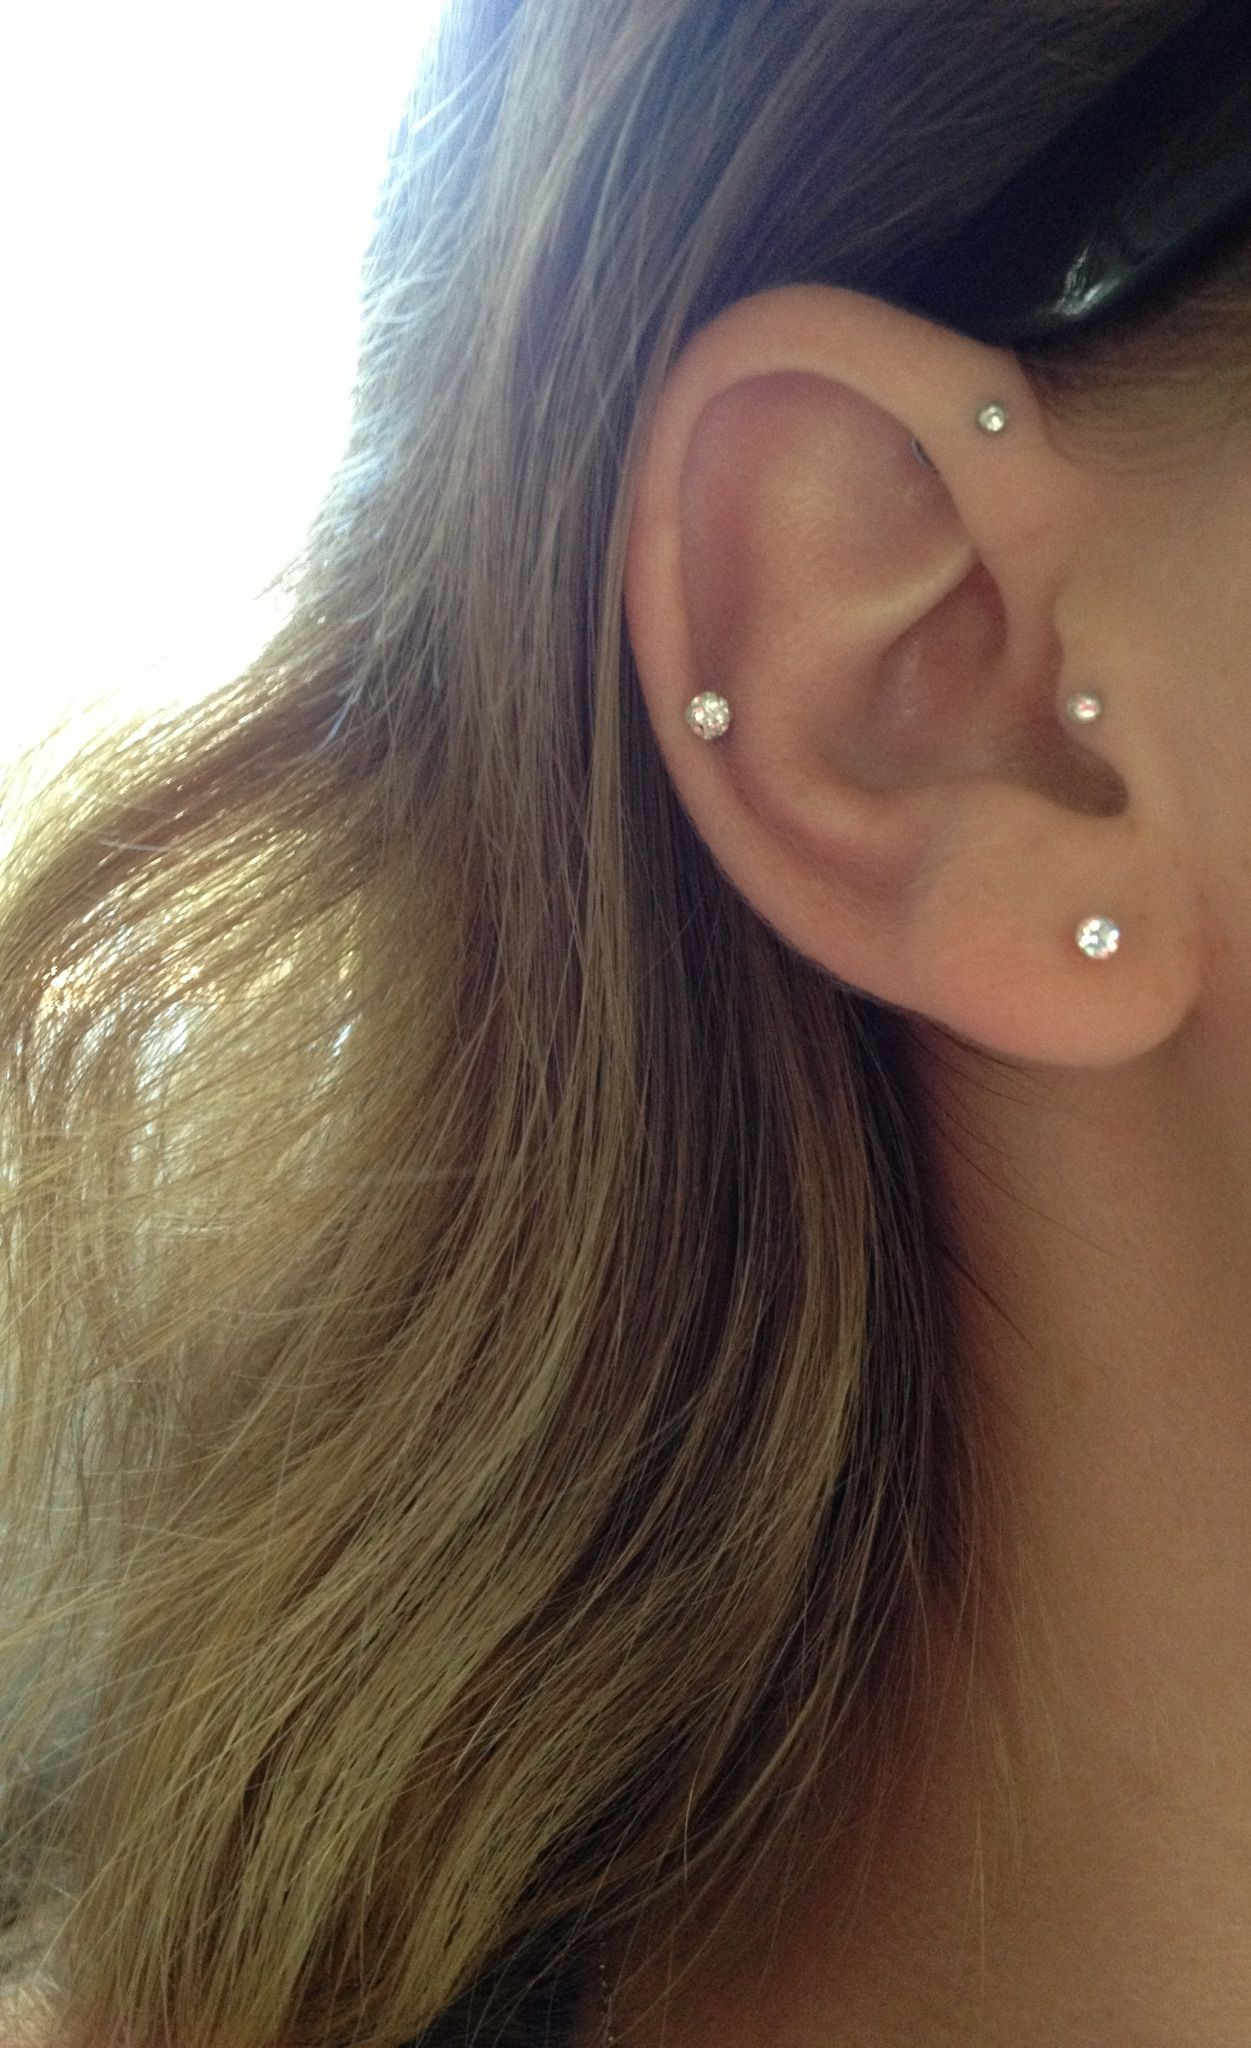 forward helix tragus and helix piercings